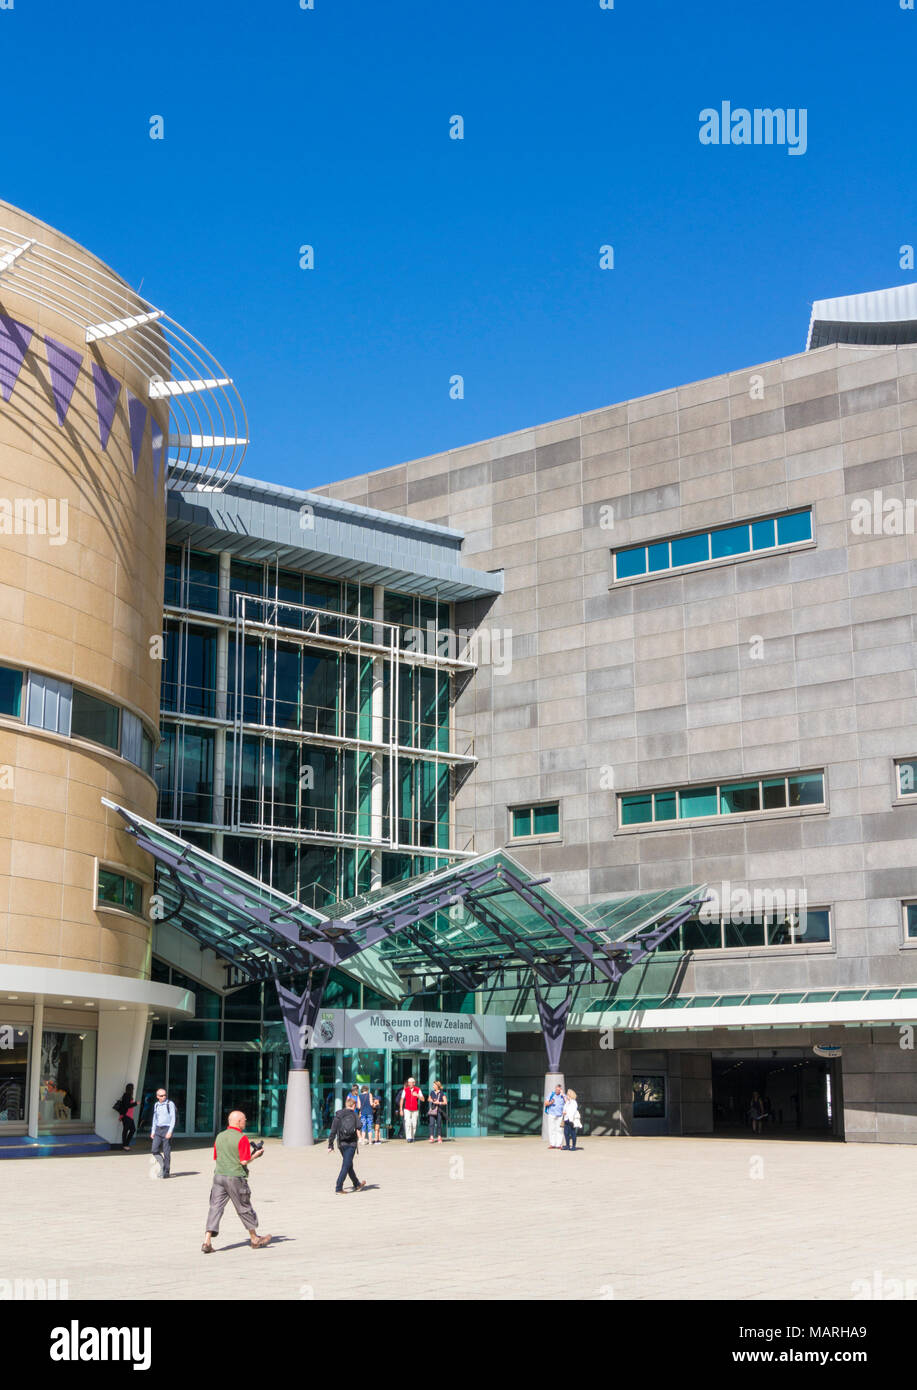 WELLINGTON NEW ZEALAND Museum of New Zealand Te Papa Tongarewa musée national et galerie d'art mixte waterfront Wellington Wellington Nouvelle-Zélande NZ Photo Stock